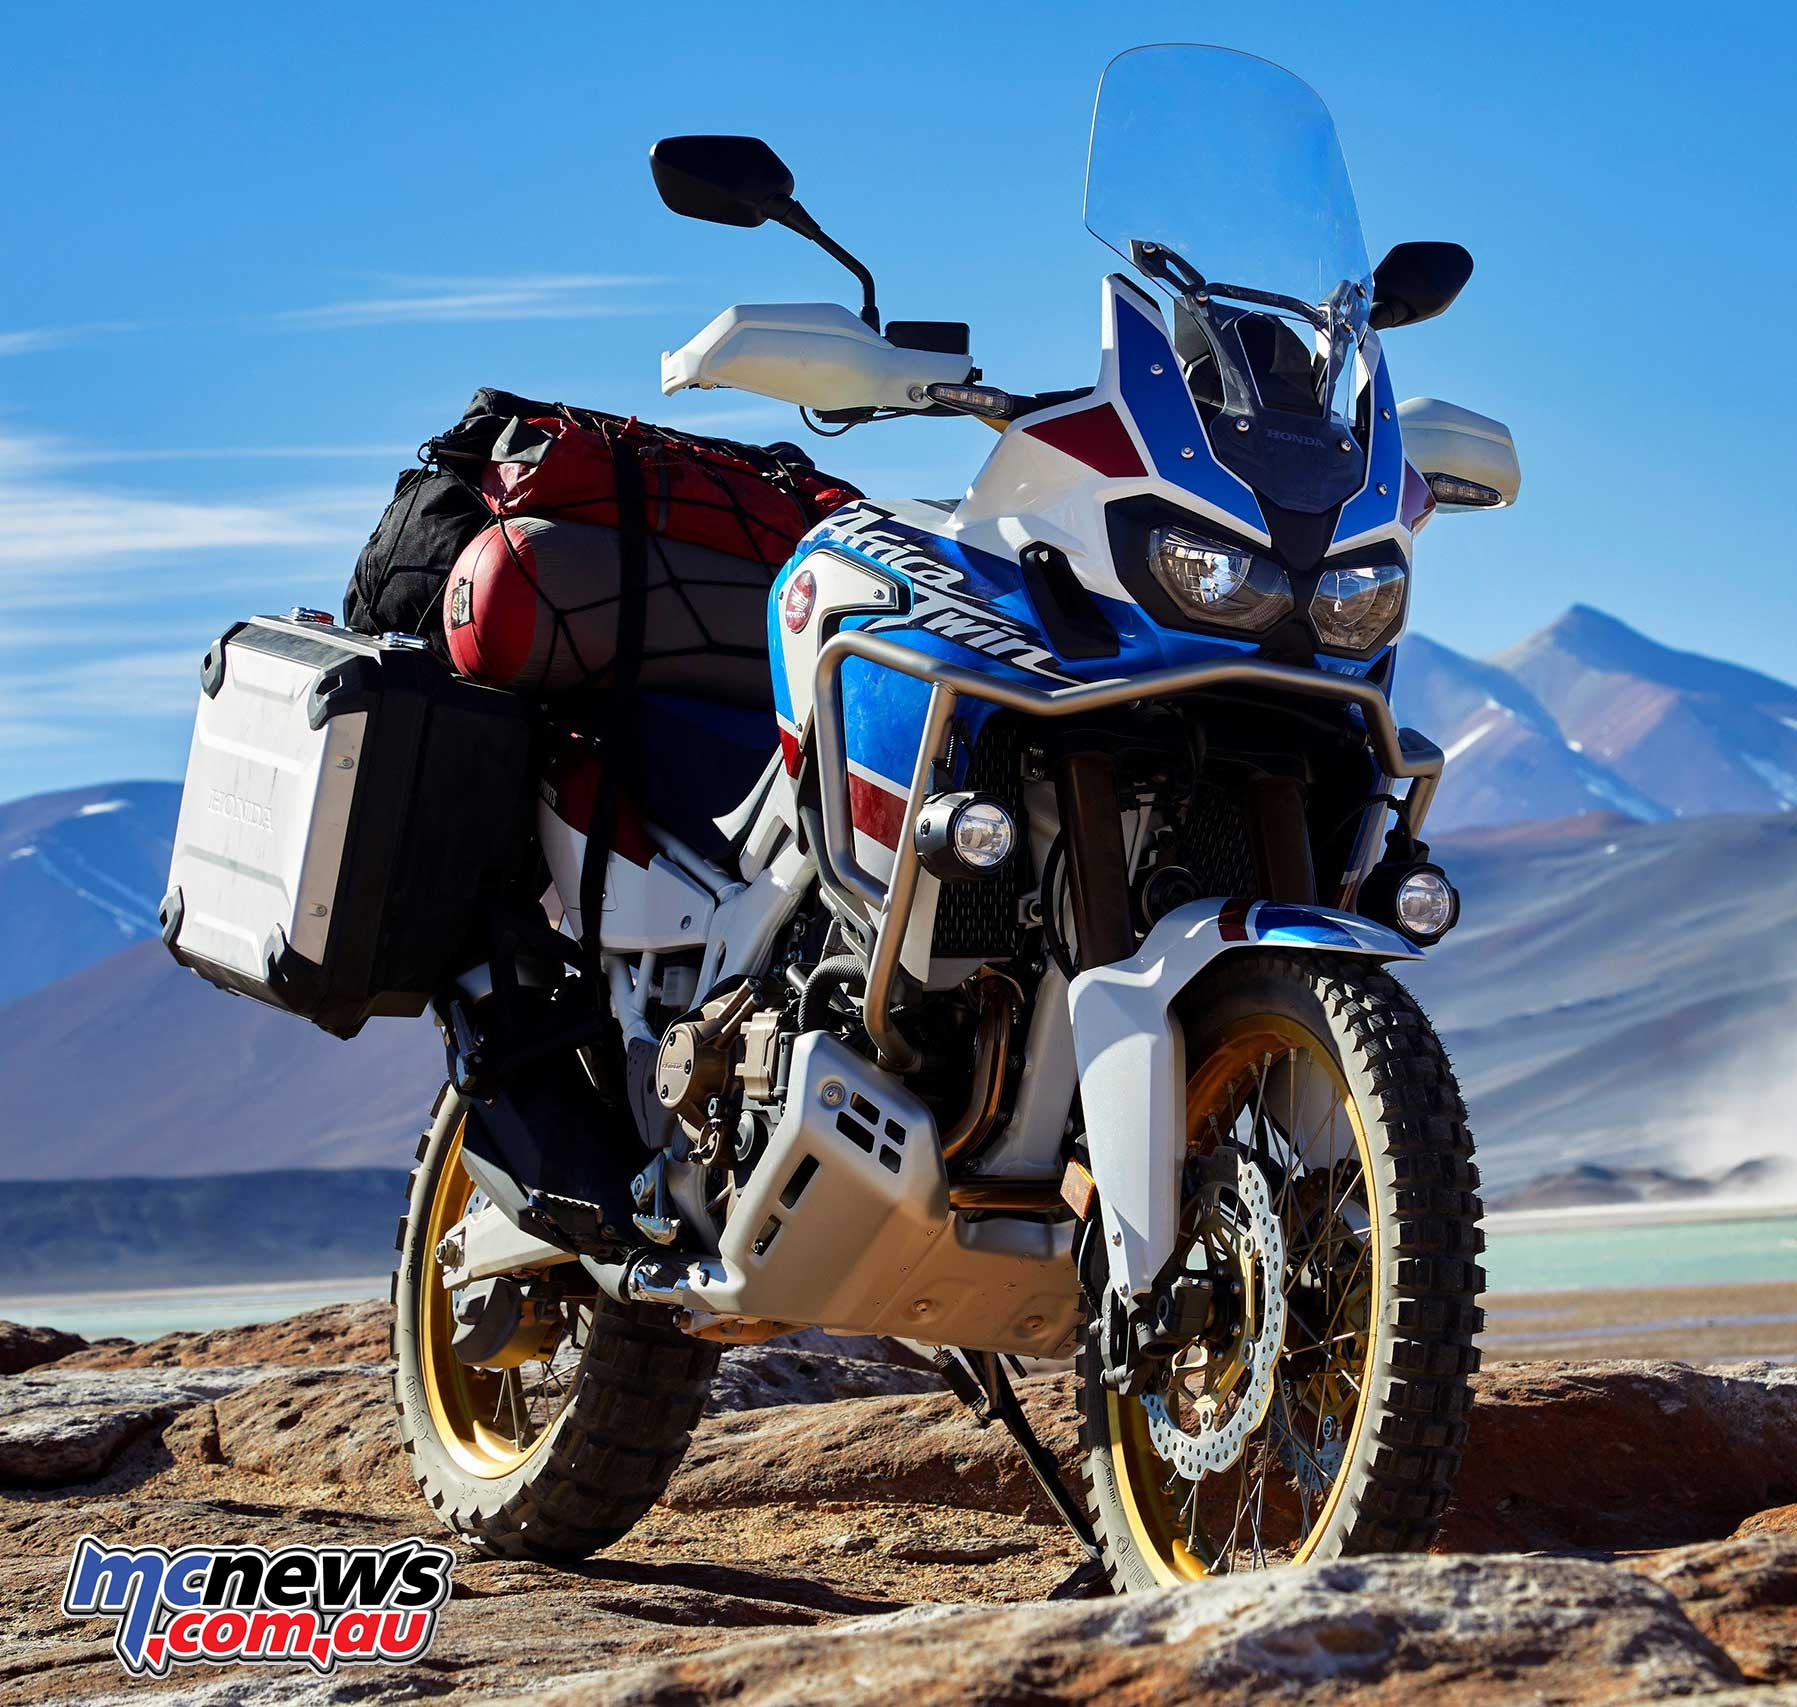 Stupendous 2019 Africa Twin Adventure Sports Now In Dealers Mcnews Com Au Evergreenethics Interior Chair Design Evergreenethicsorg